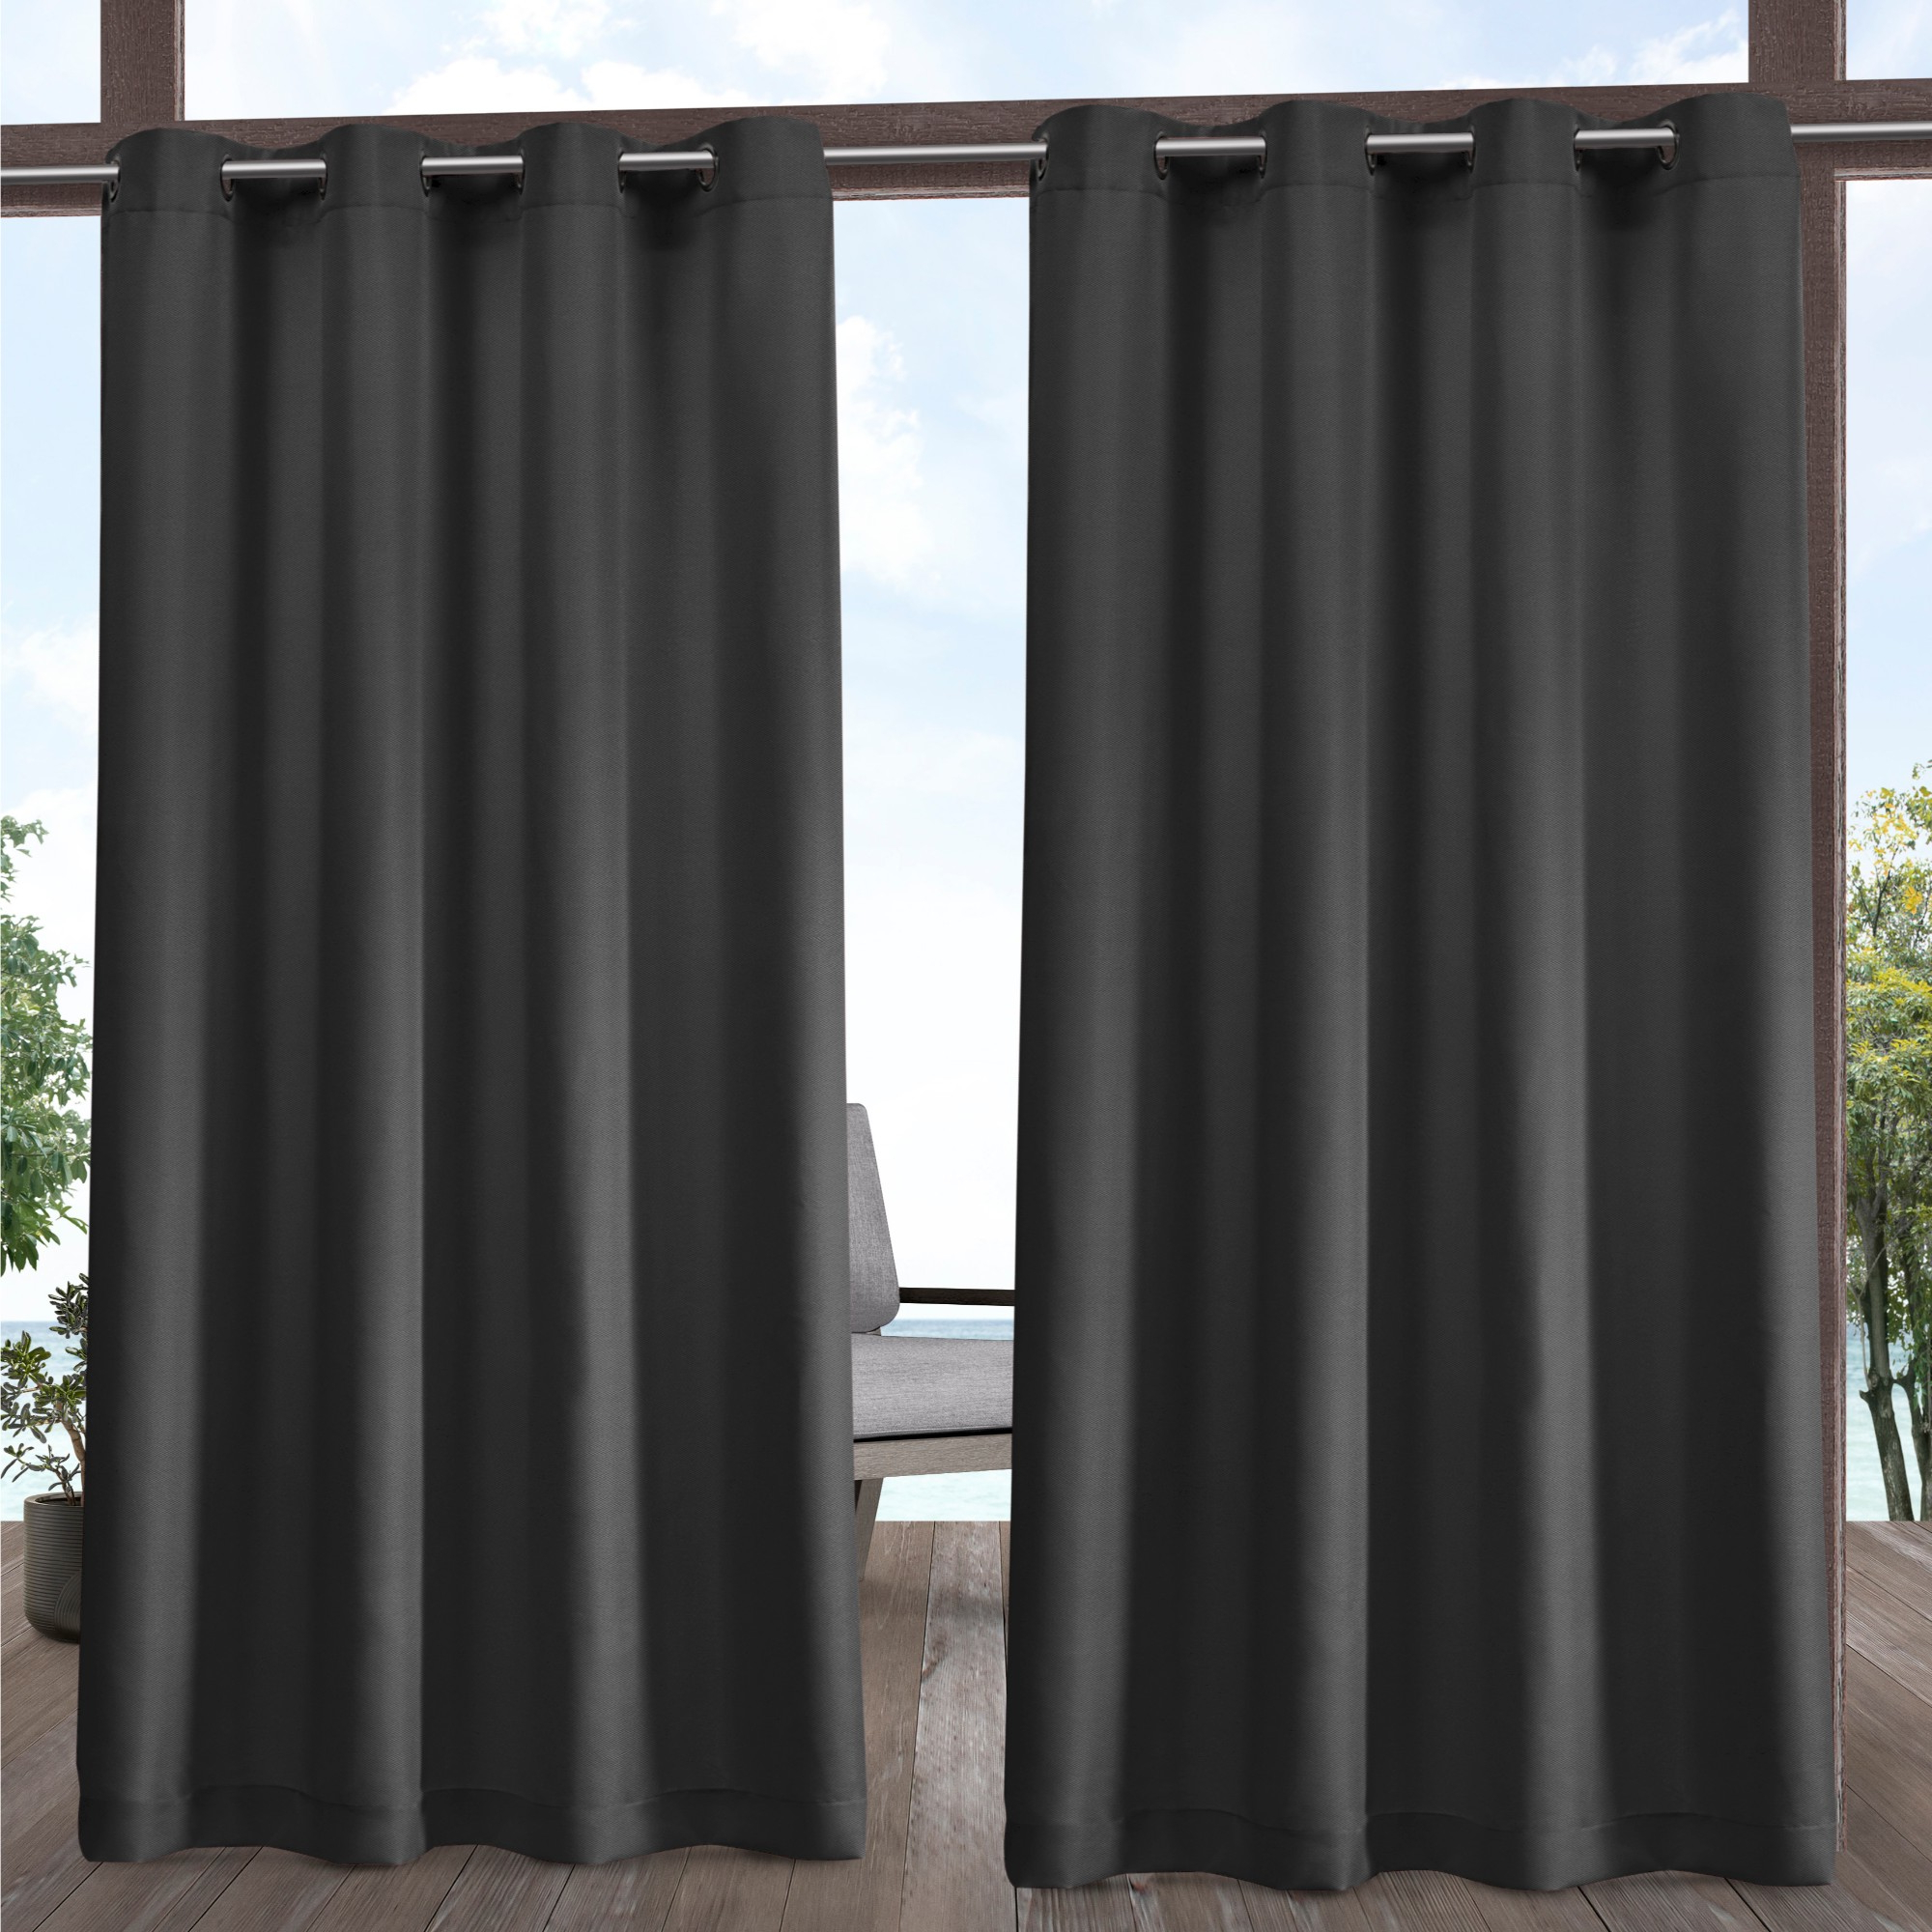 Indoor/outdoor Solid Cabana Grommet Top Window Curtain Panel Pair Within Most Recently Released Solid Grommet Top Curtain Panel Pairs (View 13 of 20)